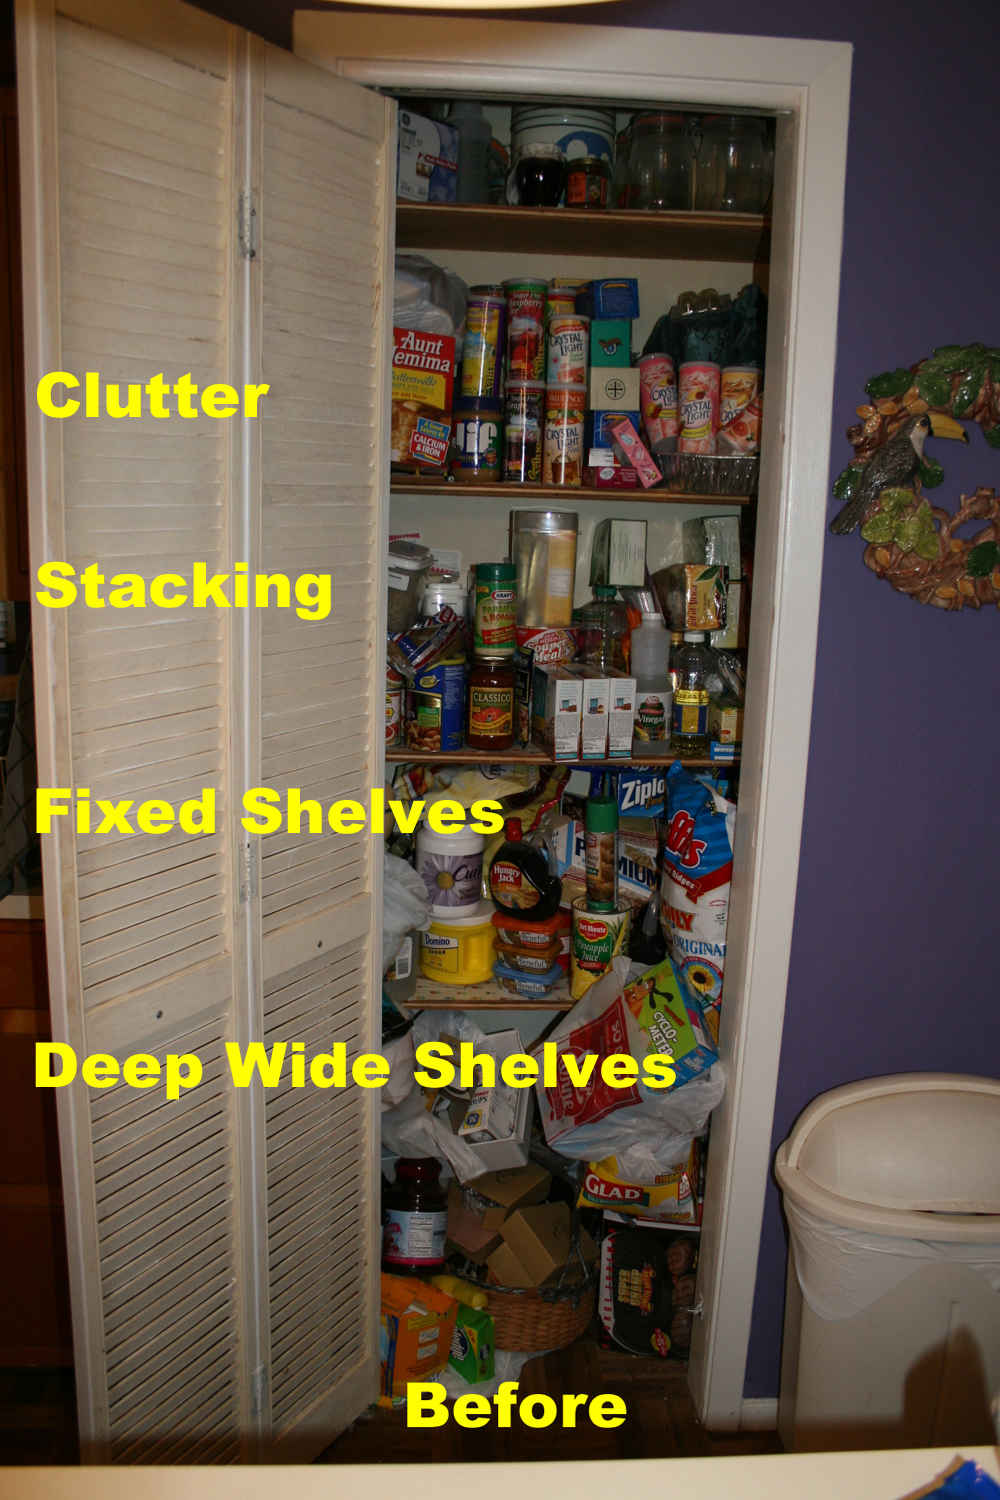 pantries tom cupboard pantrys howley cupboards pantry left content kitchen features larder